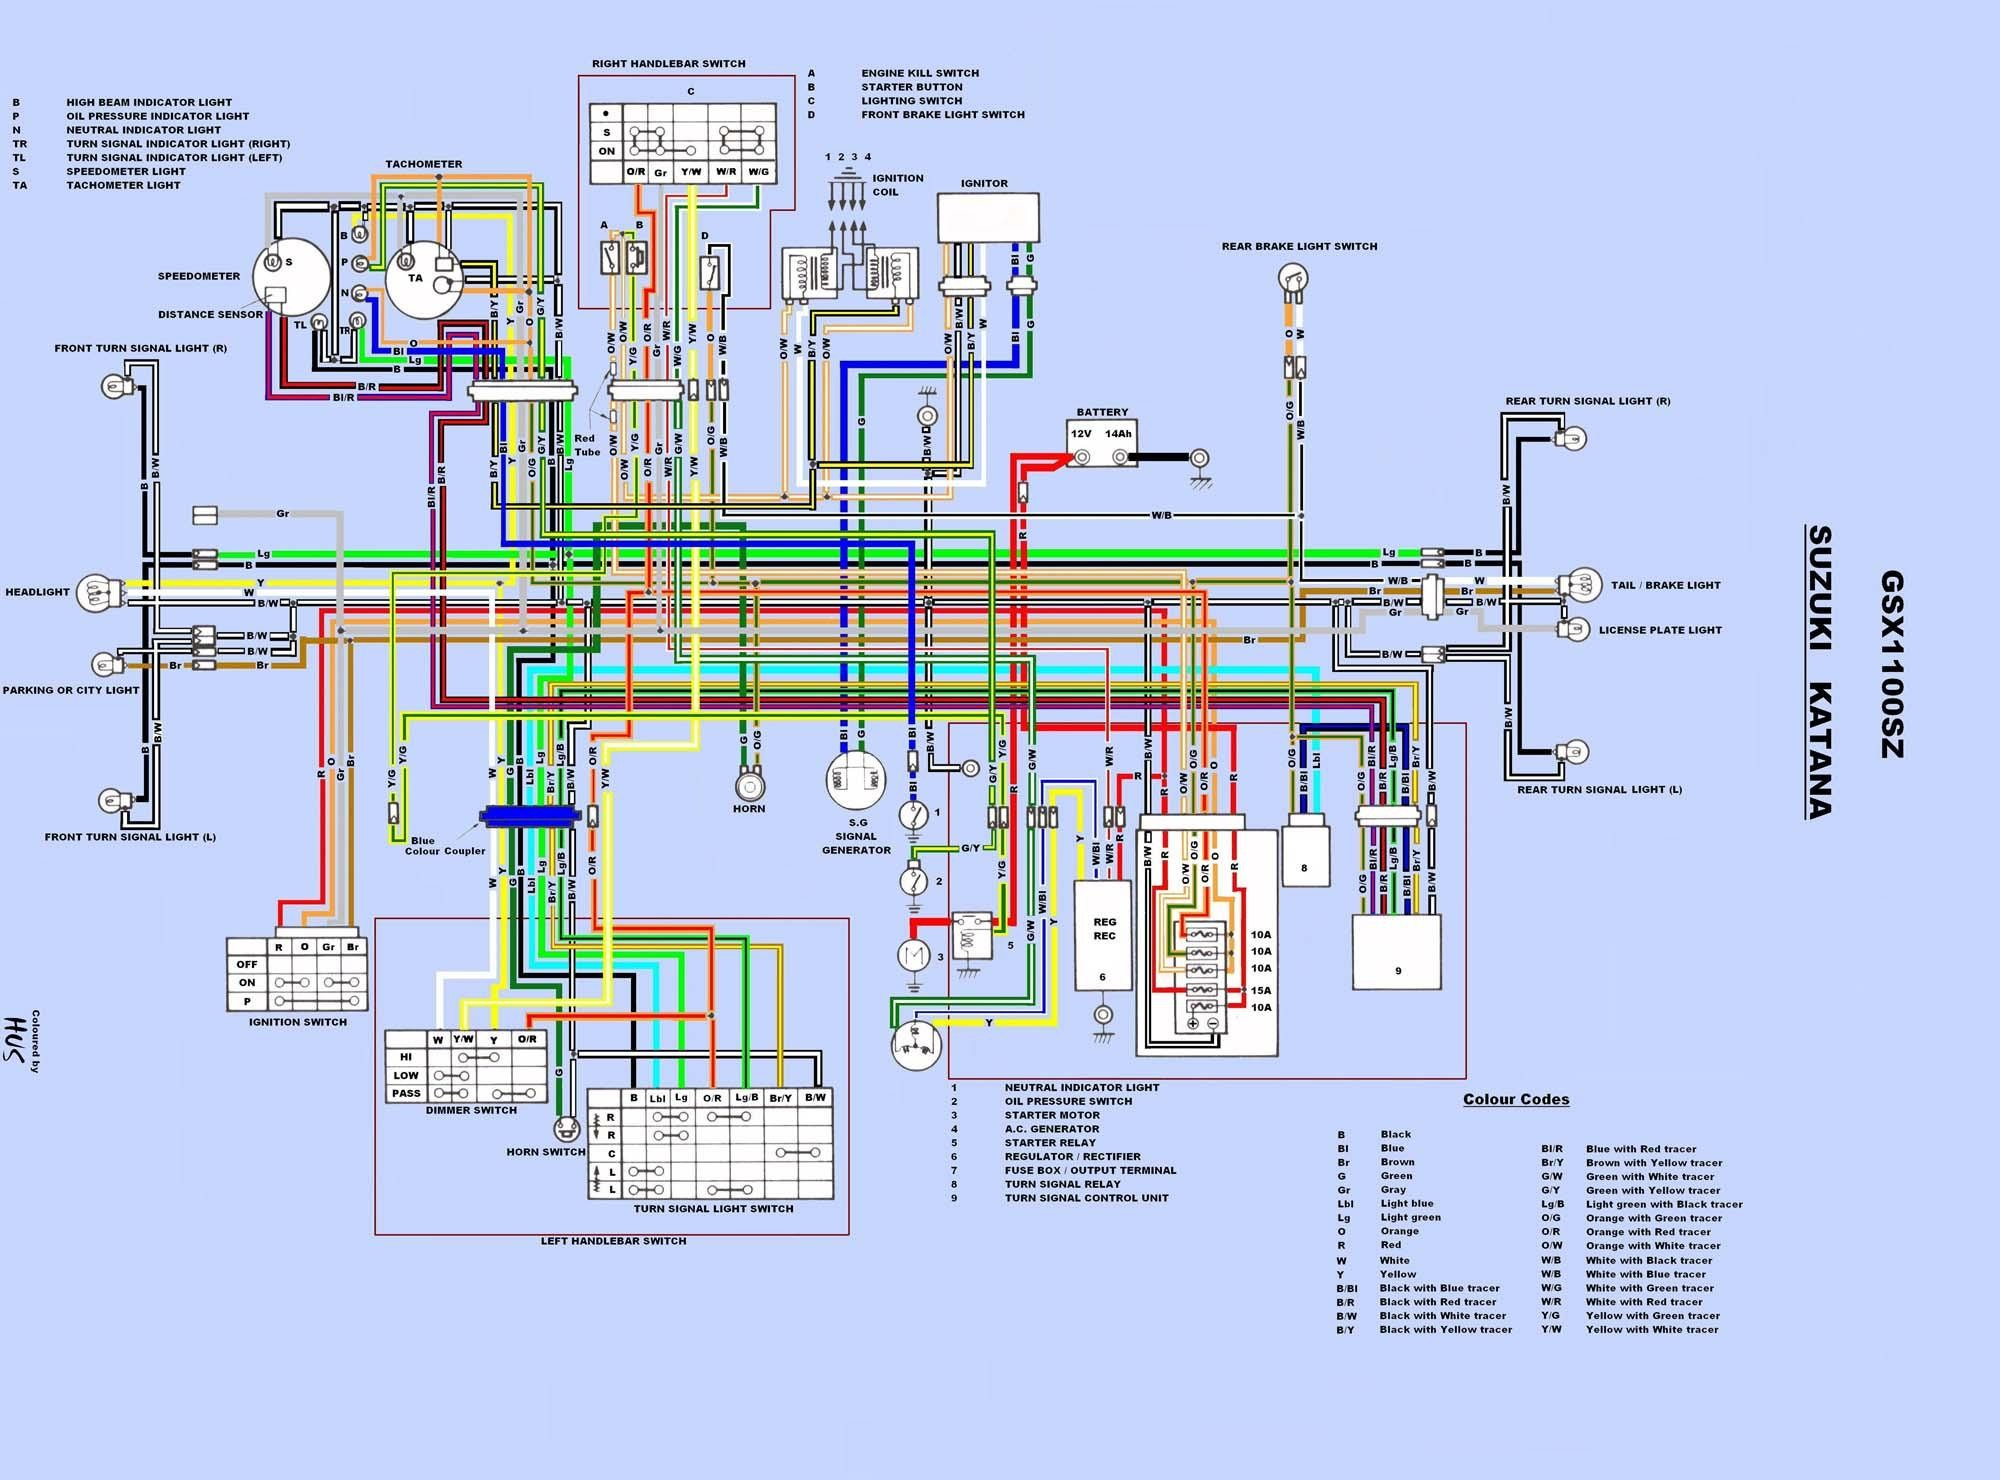 hight resolution of suzuki gs 650 wiring diagram wiring diagramsuzuki gs 750 wiring diagram 11